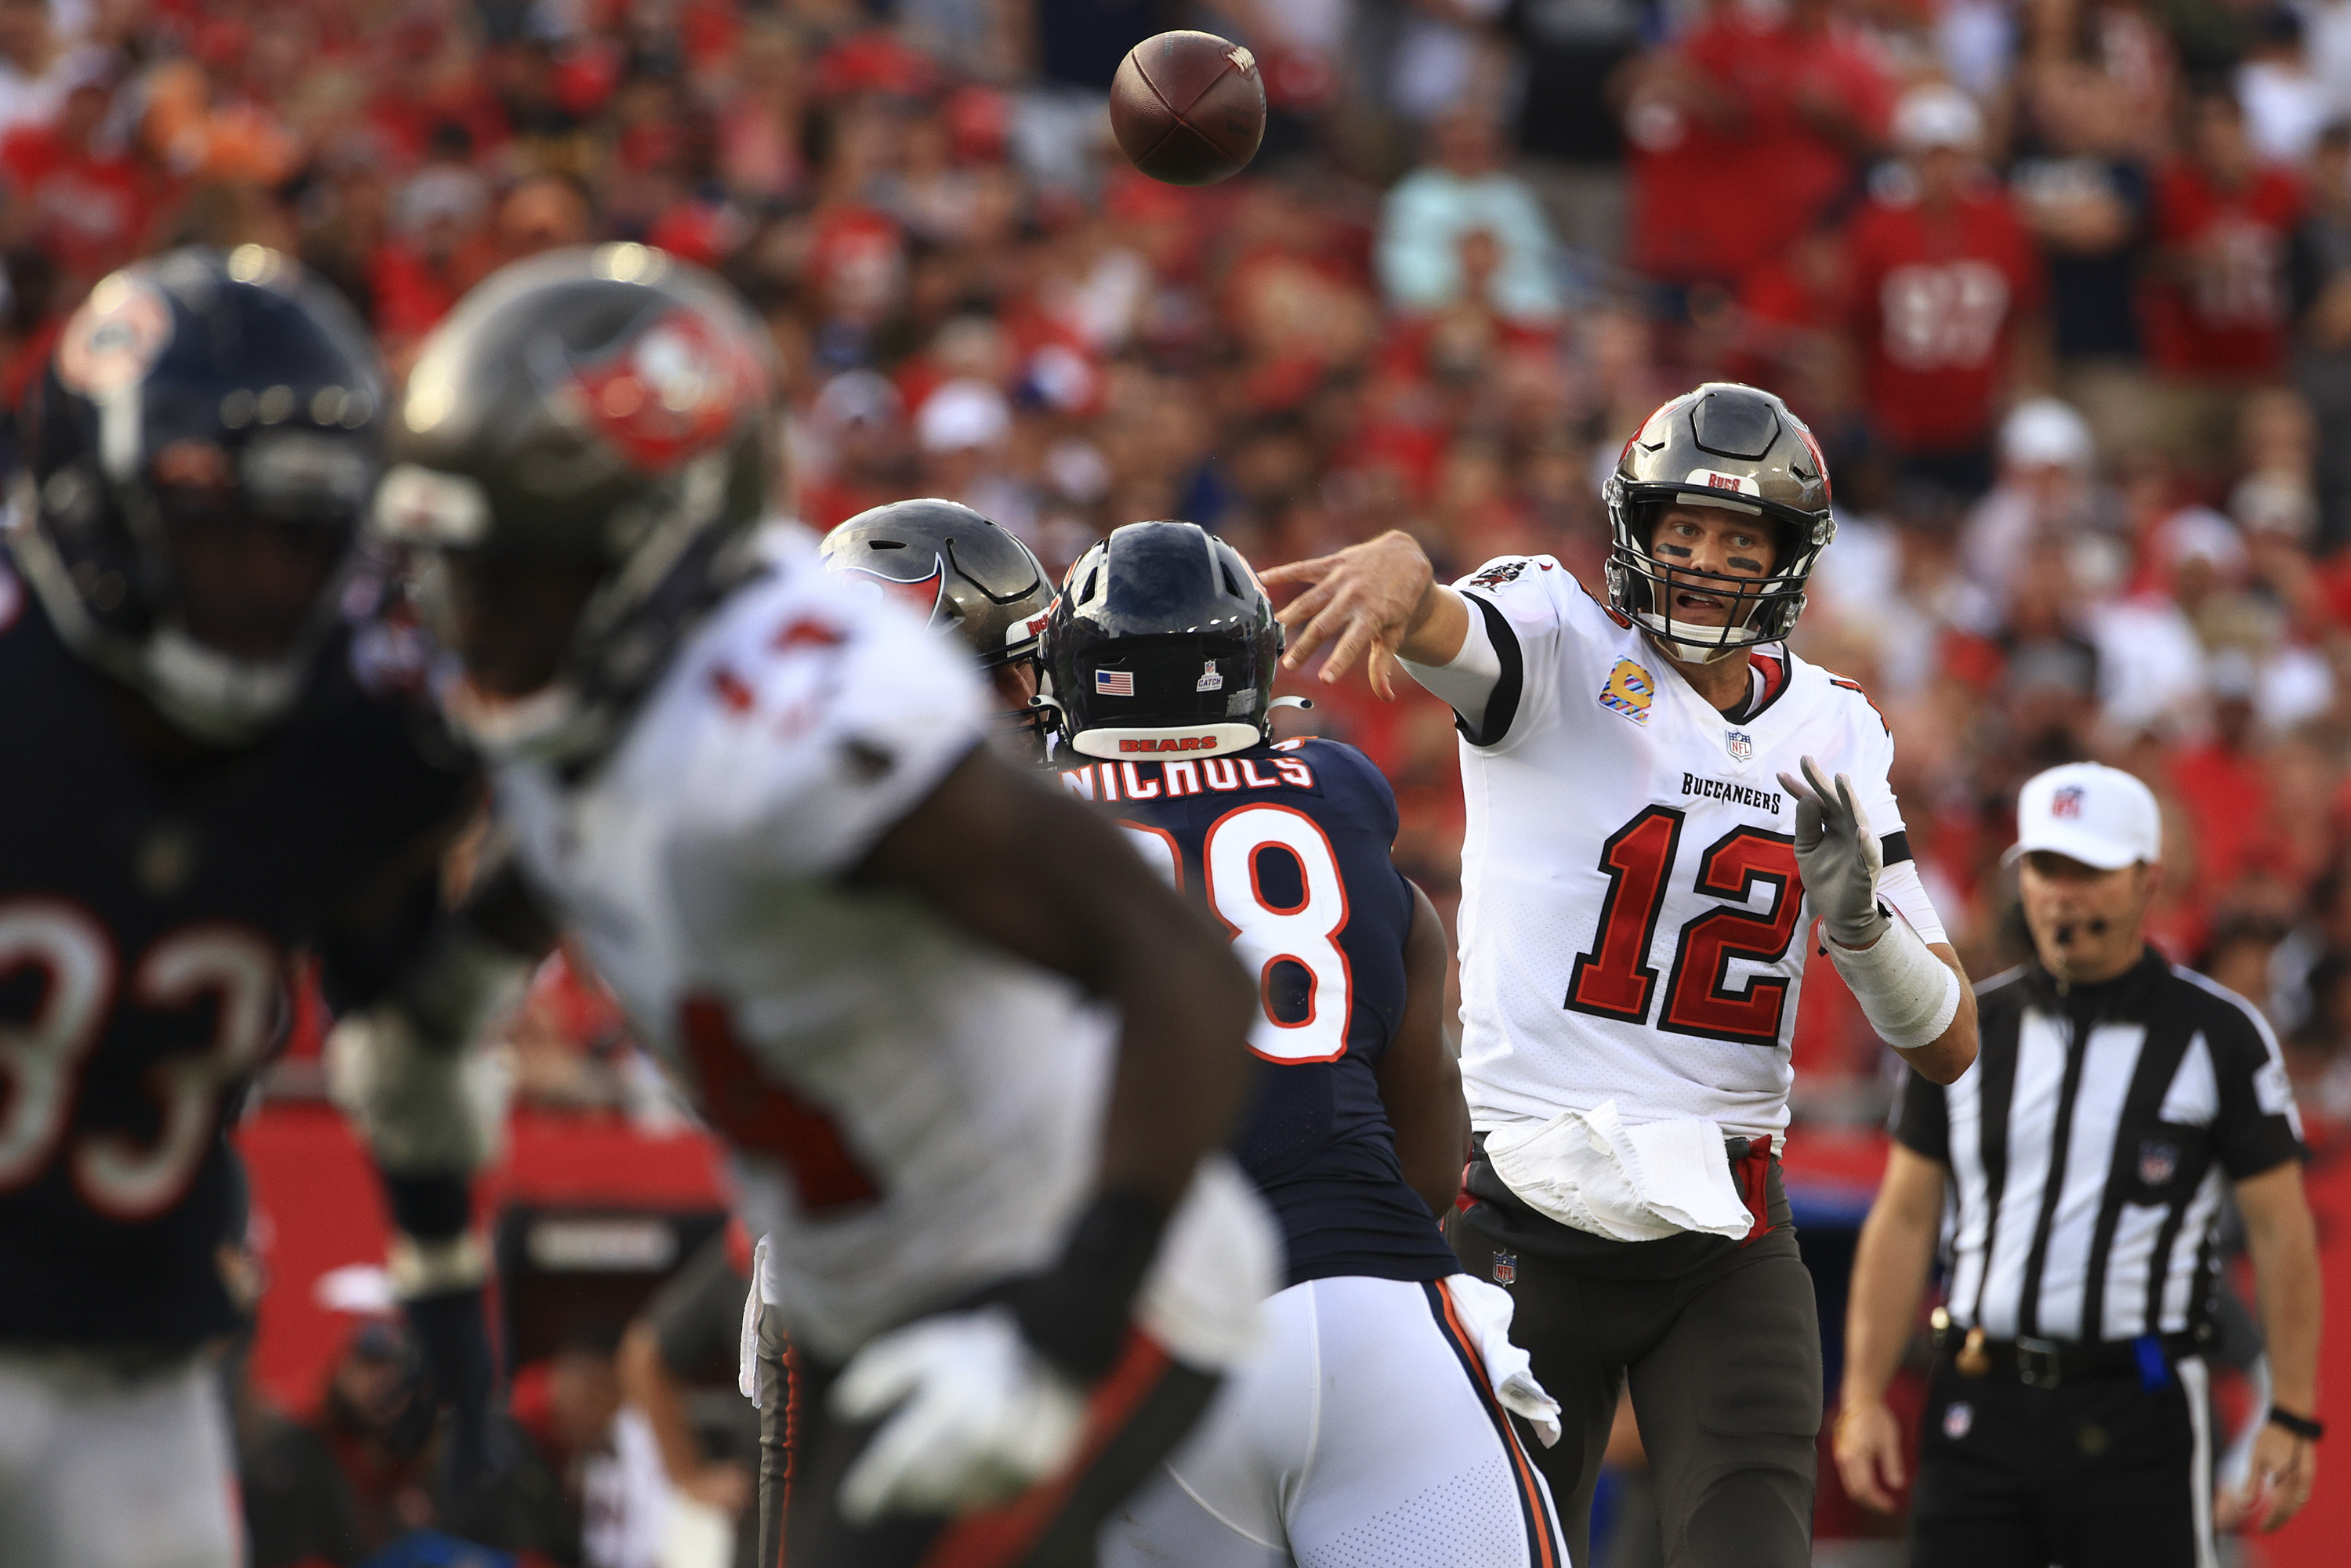 Buccaneers quarterback Tom Brady completes a pass against the Bears on Sunday.